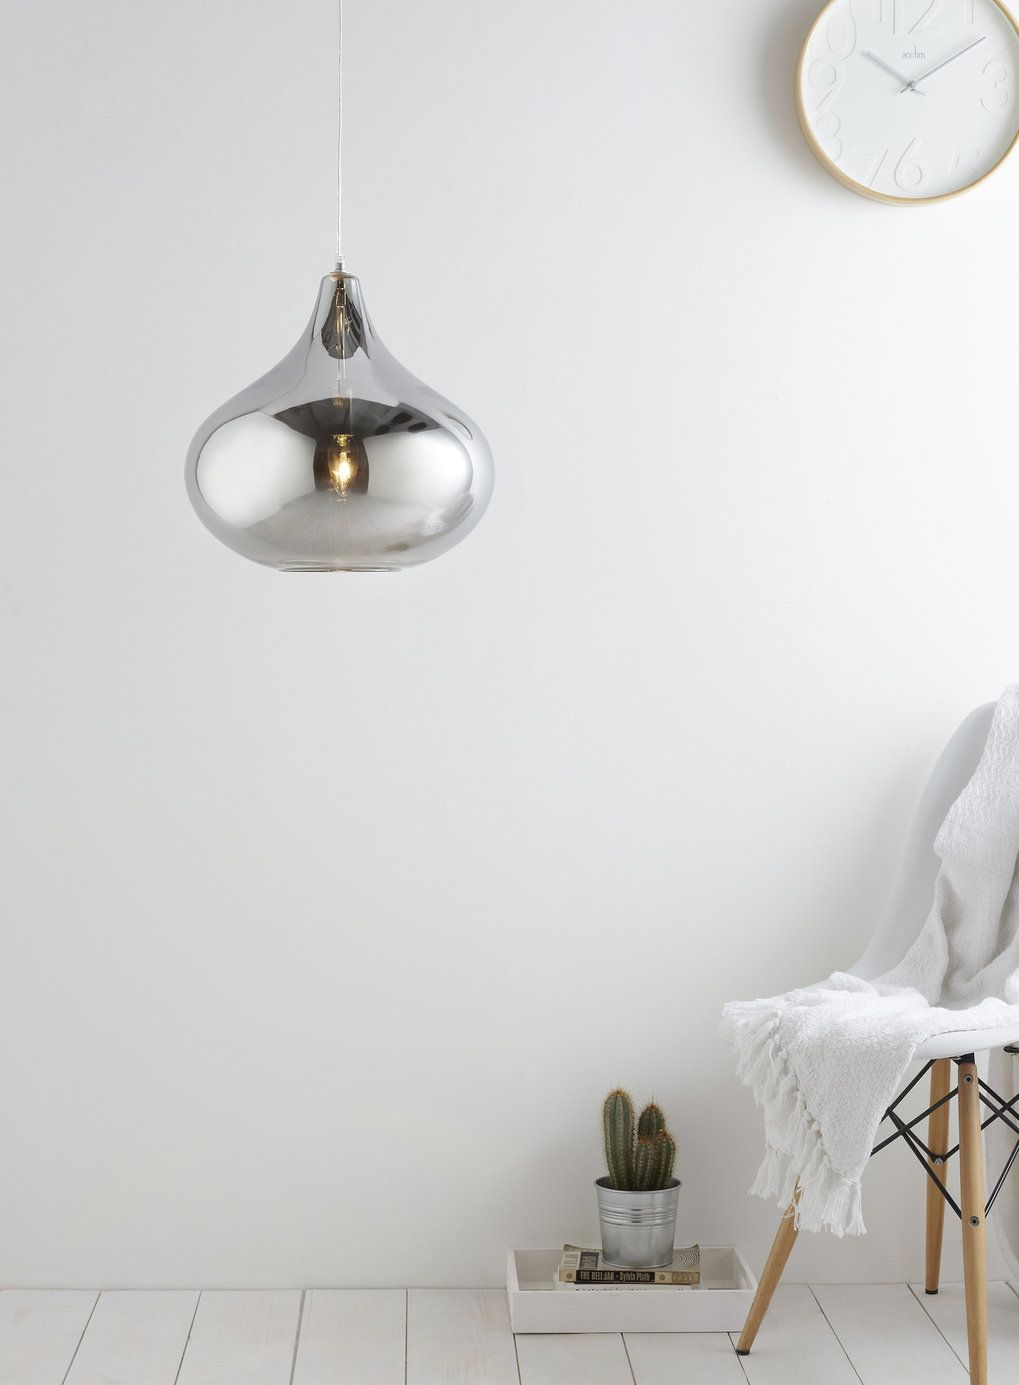 BHS Smoke Lily Round Pendant Light Weak Emitted Though